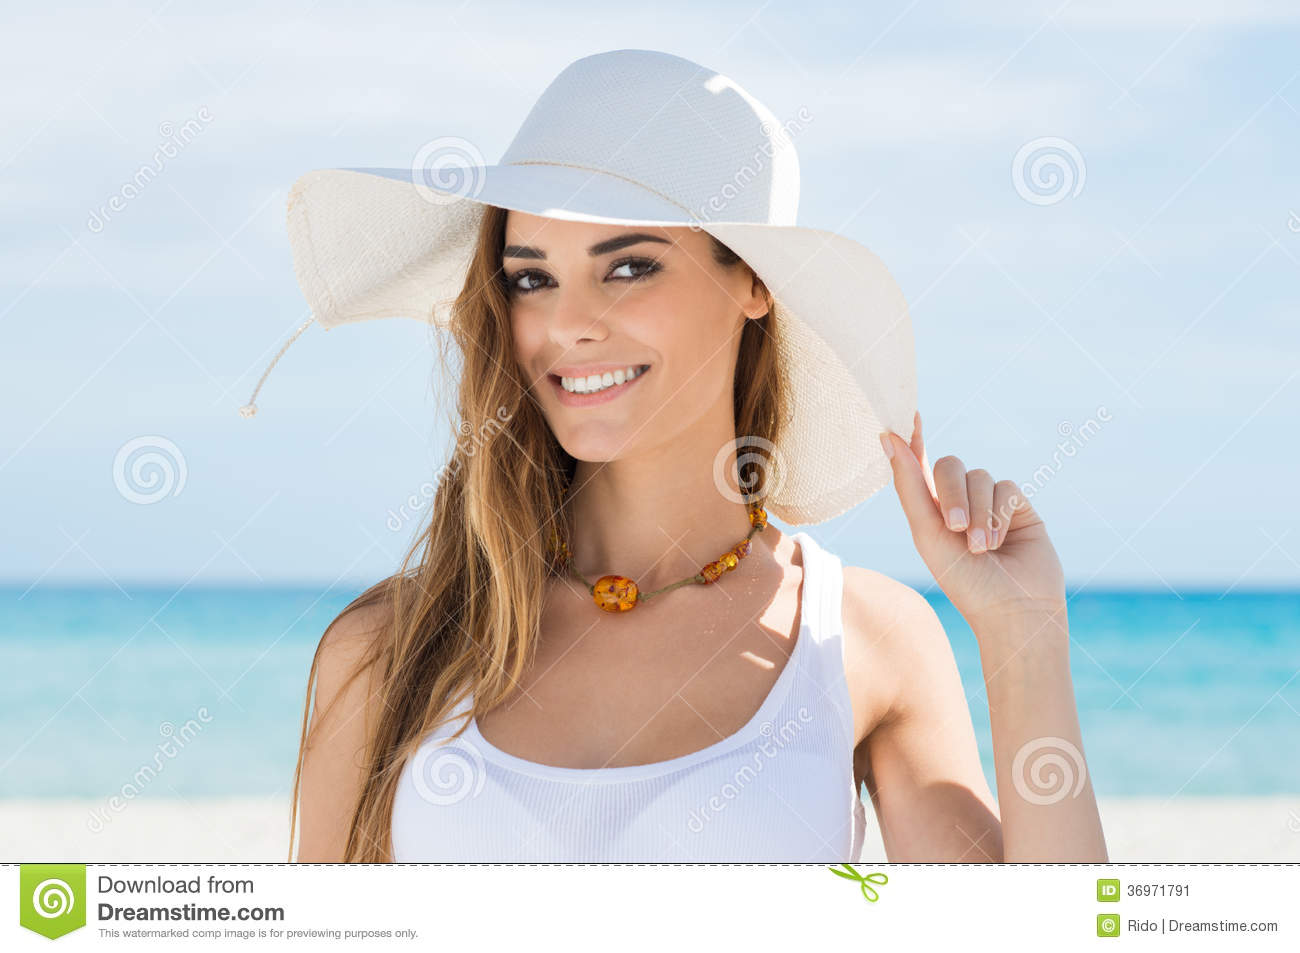 chesapeake beach spanish girl personals Anyway, much like dating a spanish girl means you've forgotten about any summer plans that don't involve lying on a beach for 3 weeks, you'd also better forget about sunday plans that don't involve rice and saffron.